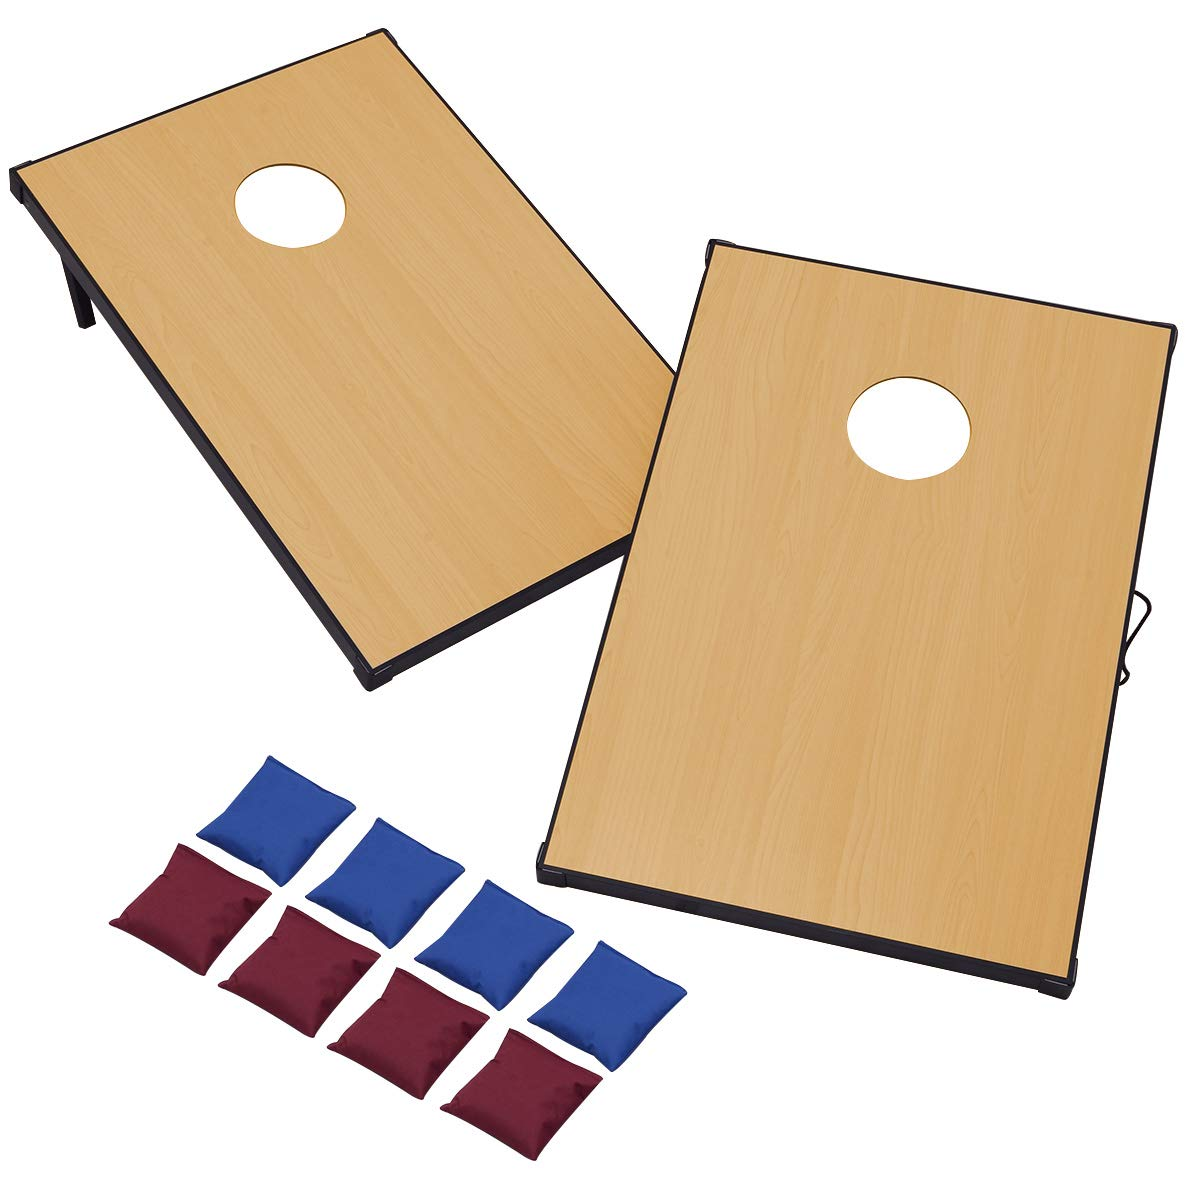 GYMAX Classic Cornhole Bean Bag Toss Game Set Portable with Solid Wood Corn Toss Boards and 8 Bean Bags (47'' x 23.5'' x 3'') by GYMAX